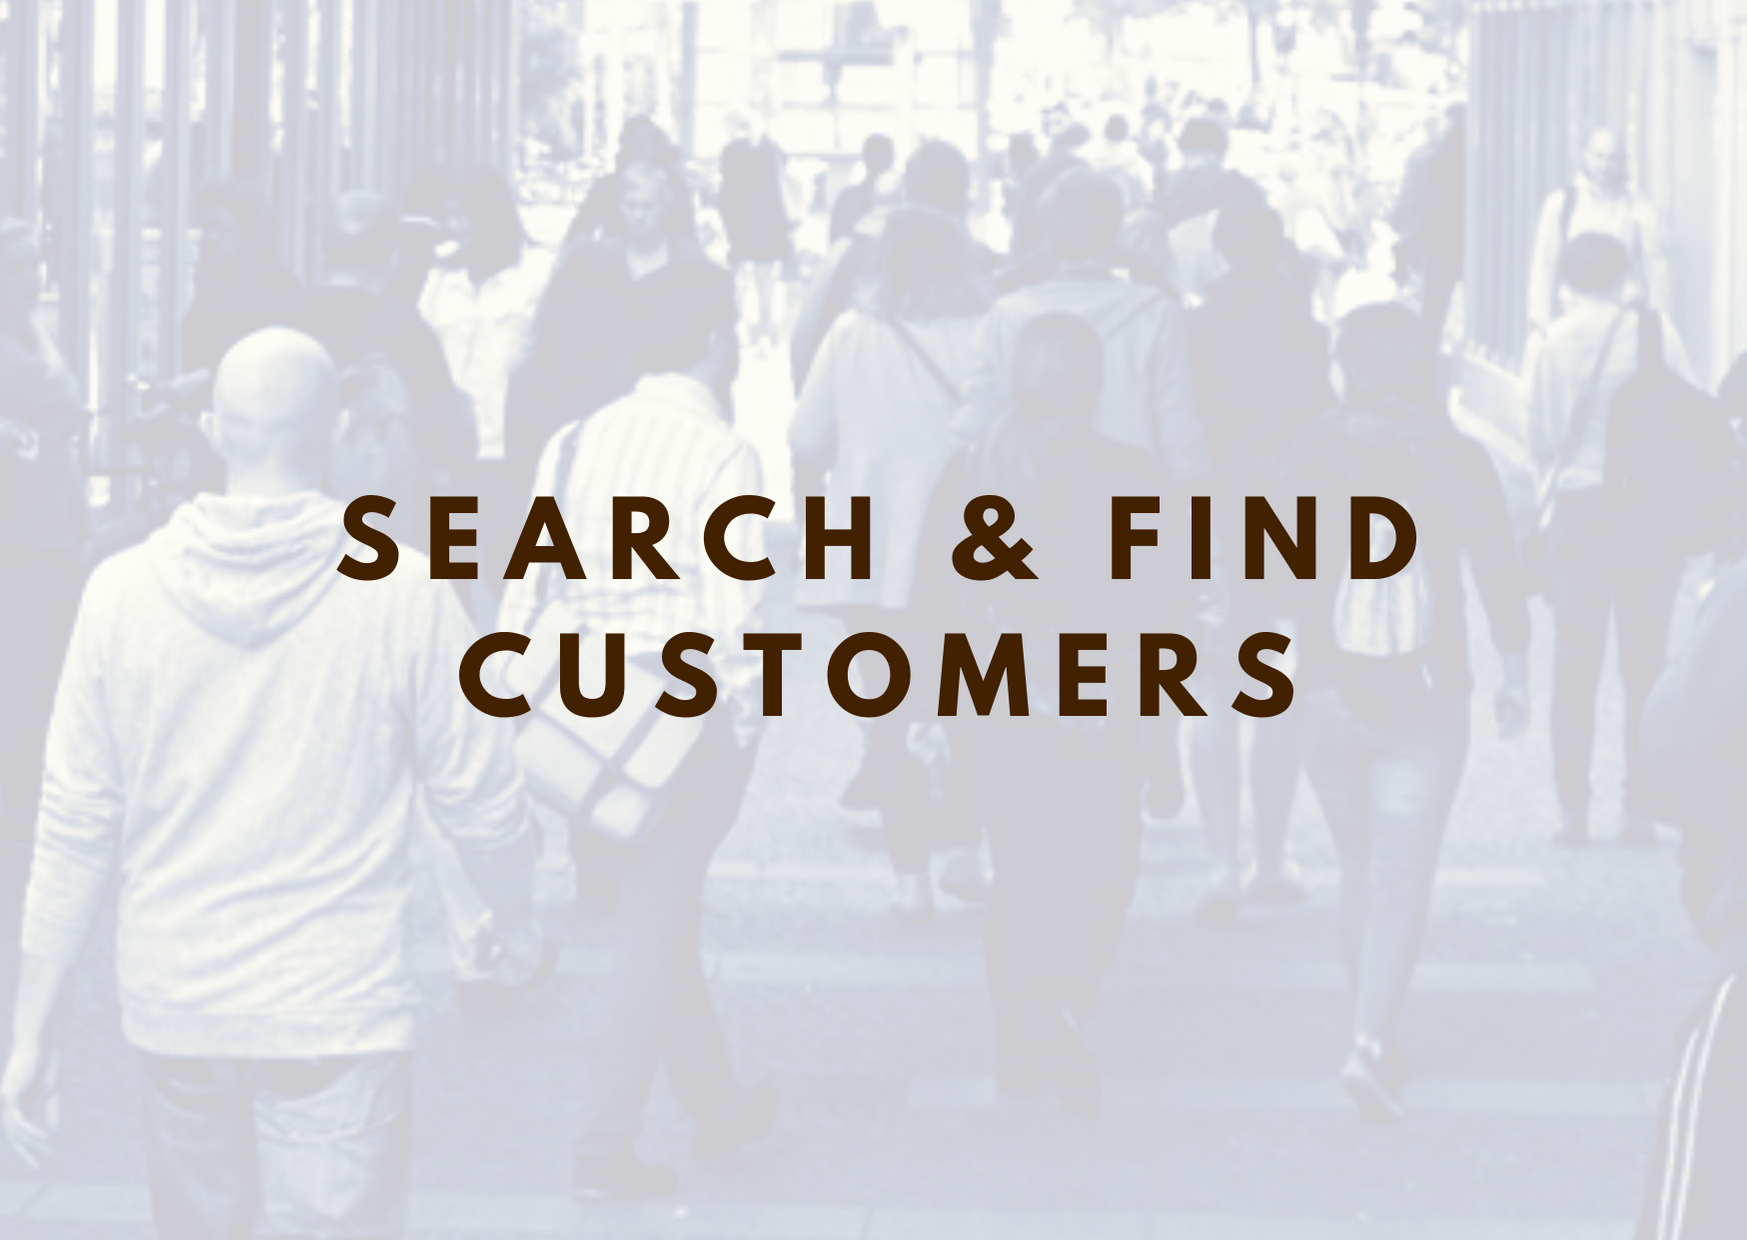 MediaBros helps you to search and find customers